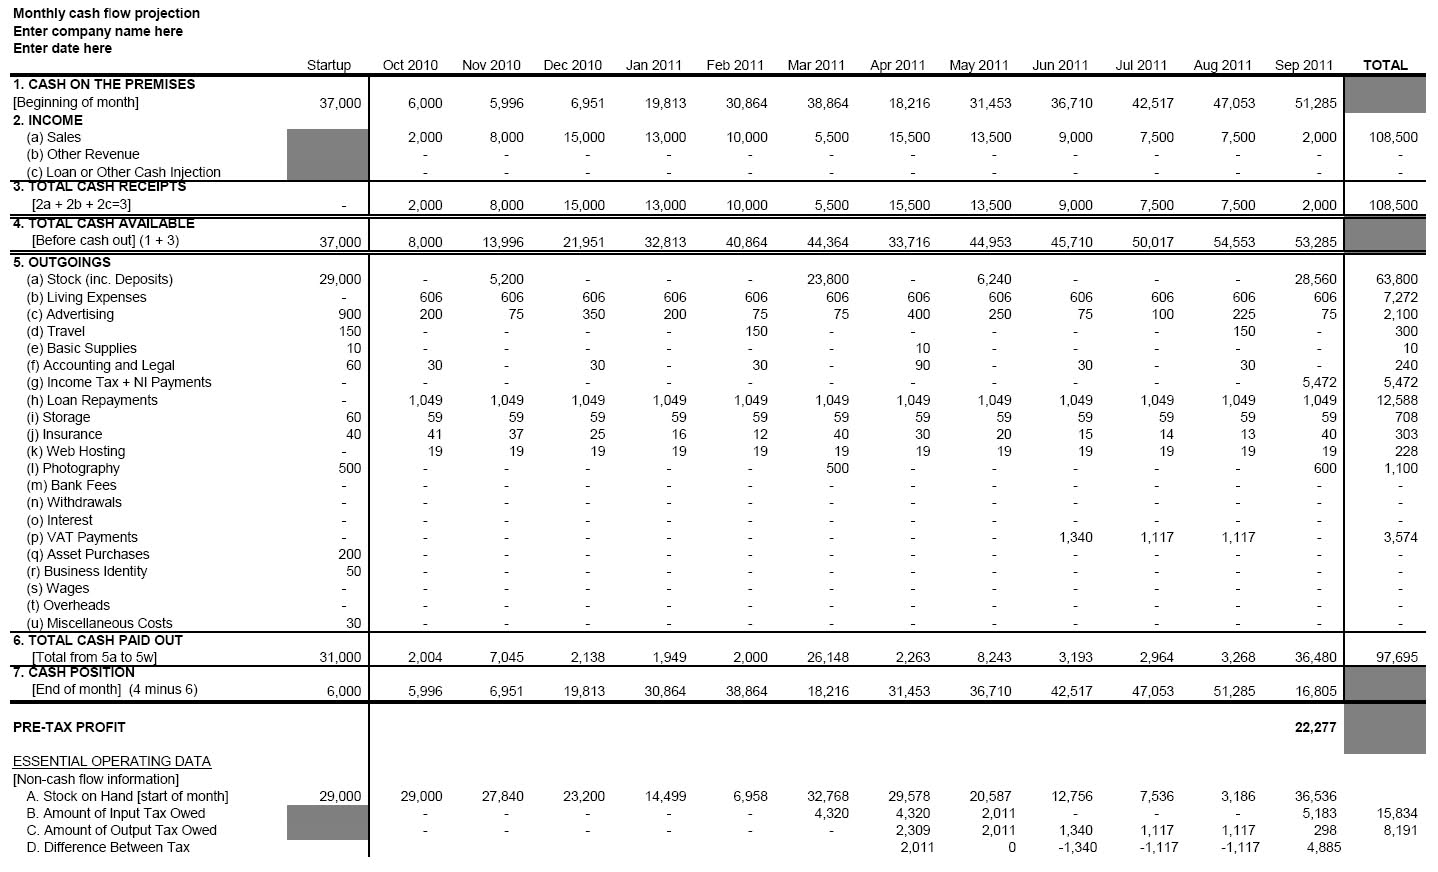 Cash Flow Spreadsheet Uk Within Advice With Cash Flow And Yearly Profit Projections With Pictures